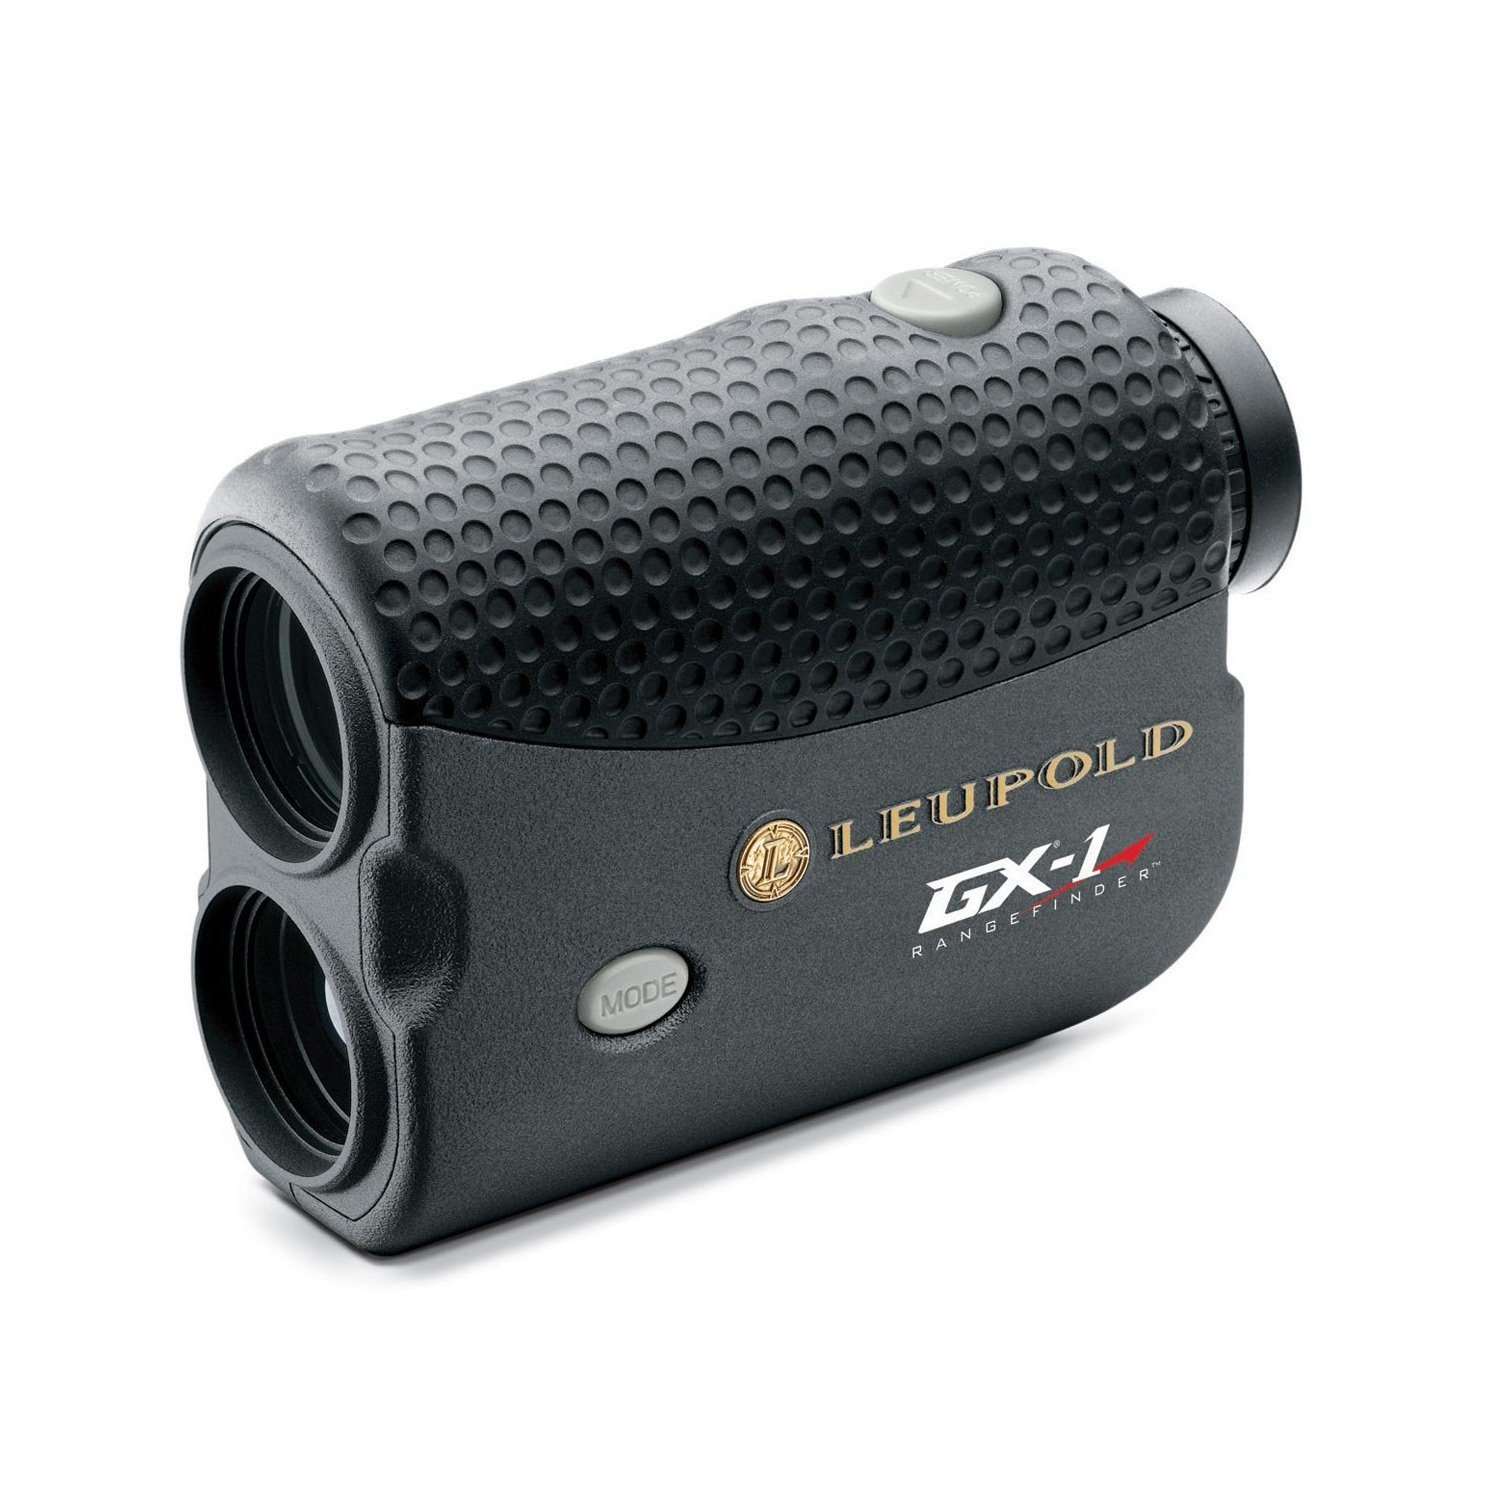 Leupold GX-1 rangefinder reviews